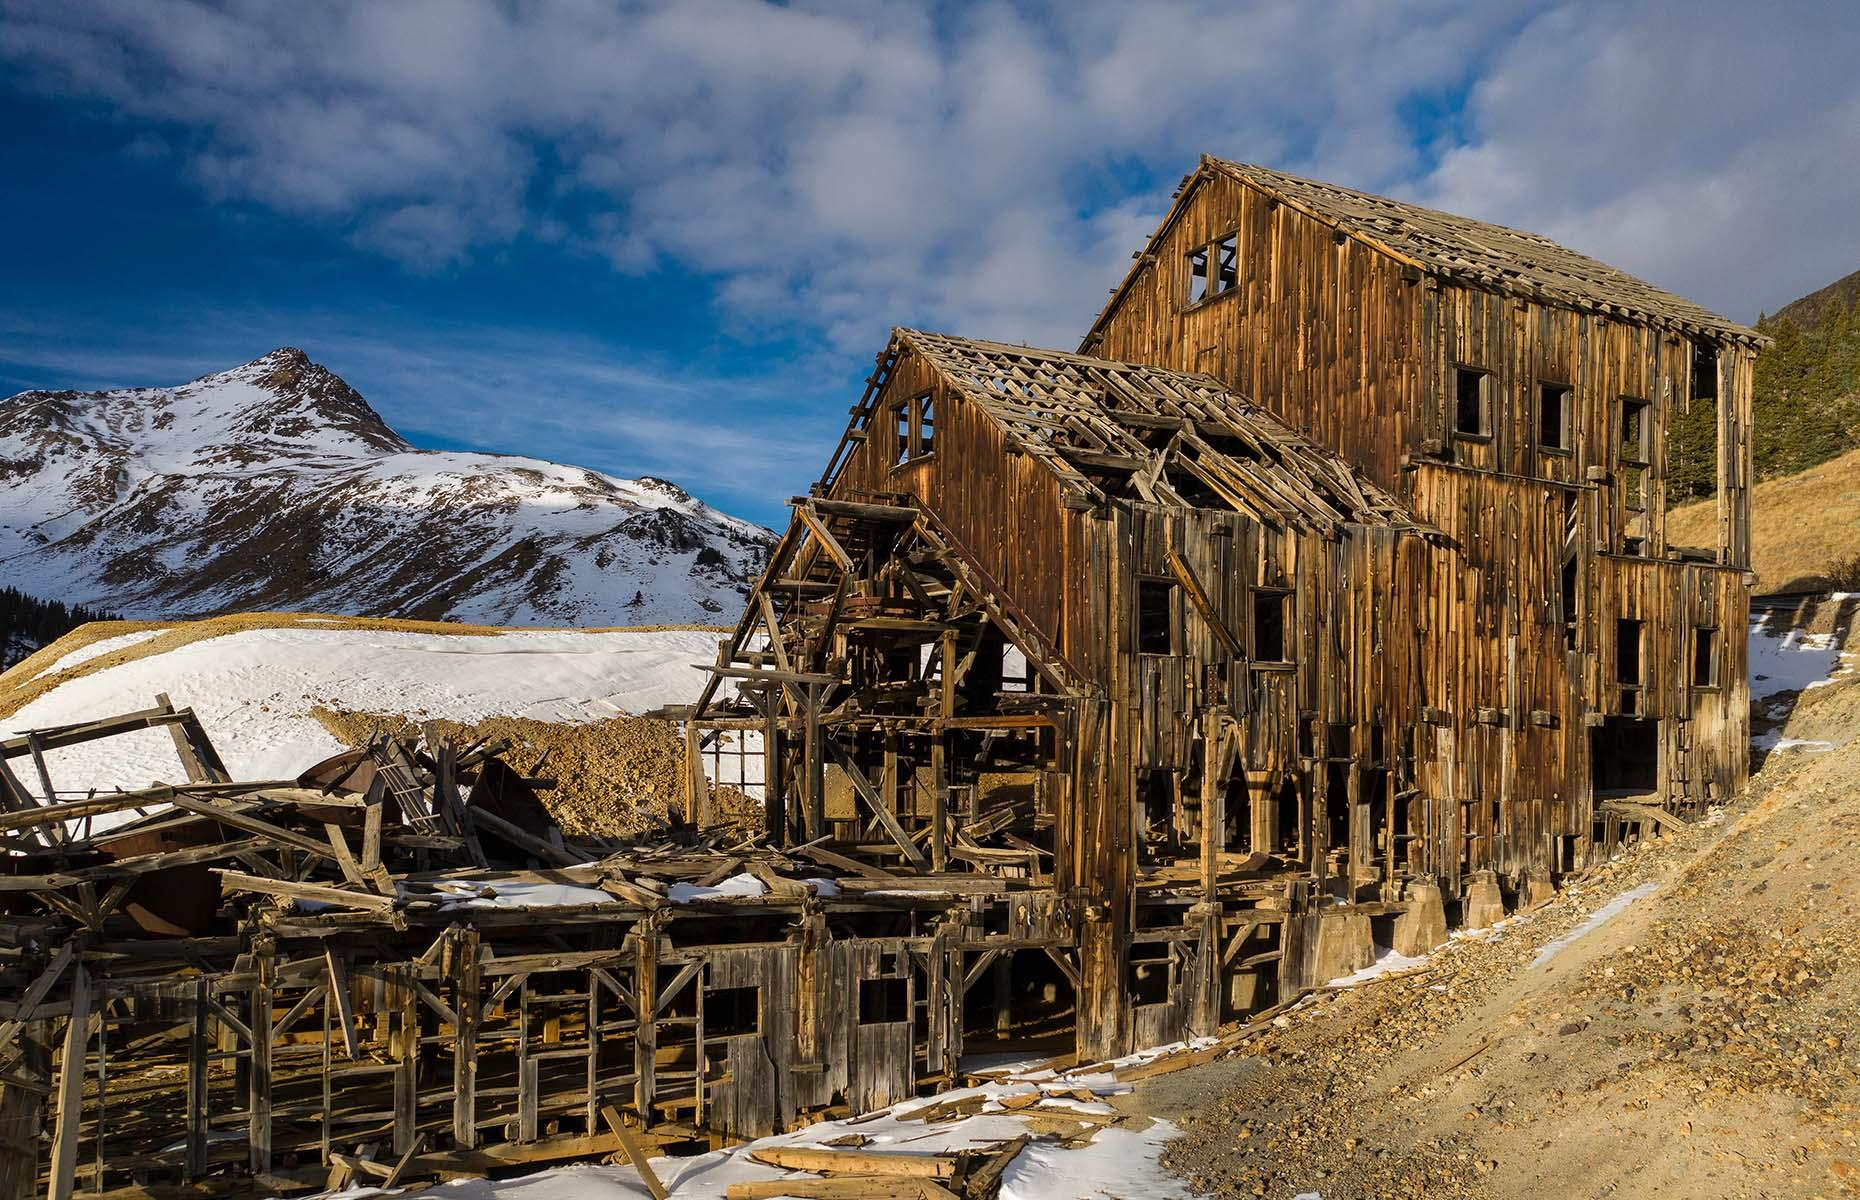 Slide 12 of 46: With no more gold left to prospect in the mountains, dealing with Colorado mountain winters suddenly became extremely unappealing and the town was swiftly abandoned. Today, visitors can explore the deserted village, including the gold processing plant, all of which is frozen in time.